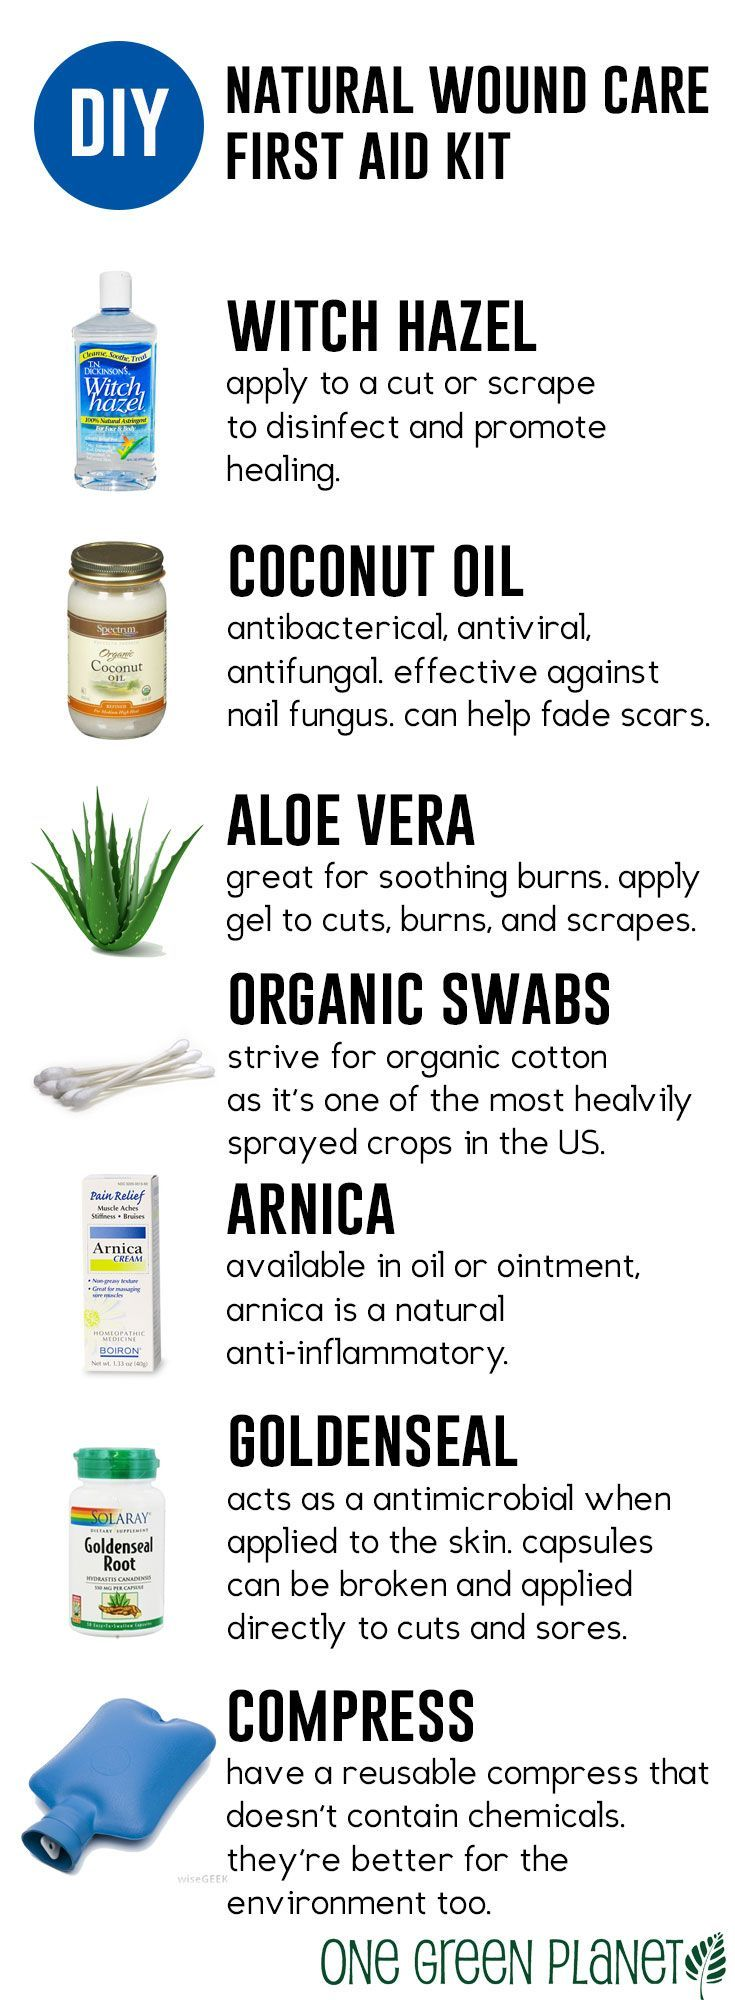 Natural Wound Care at Home: 7 Products You Need for Your Homemade First Aid Kit http://onegr.pl/1rjKVZu #summer #diy #vegan